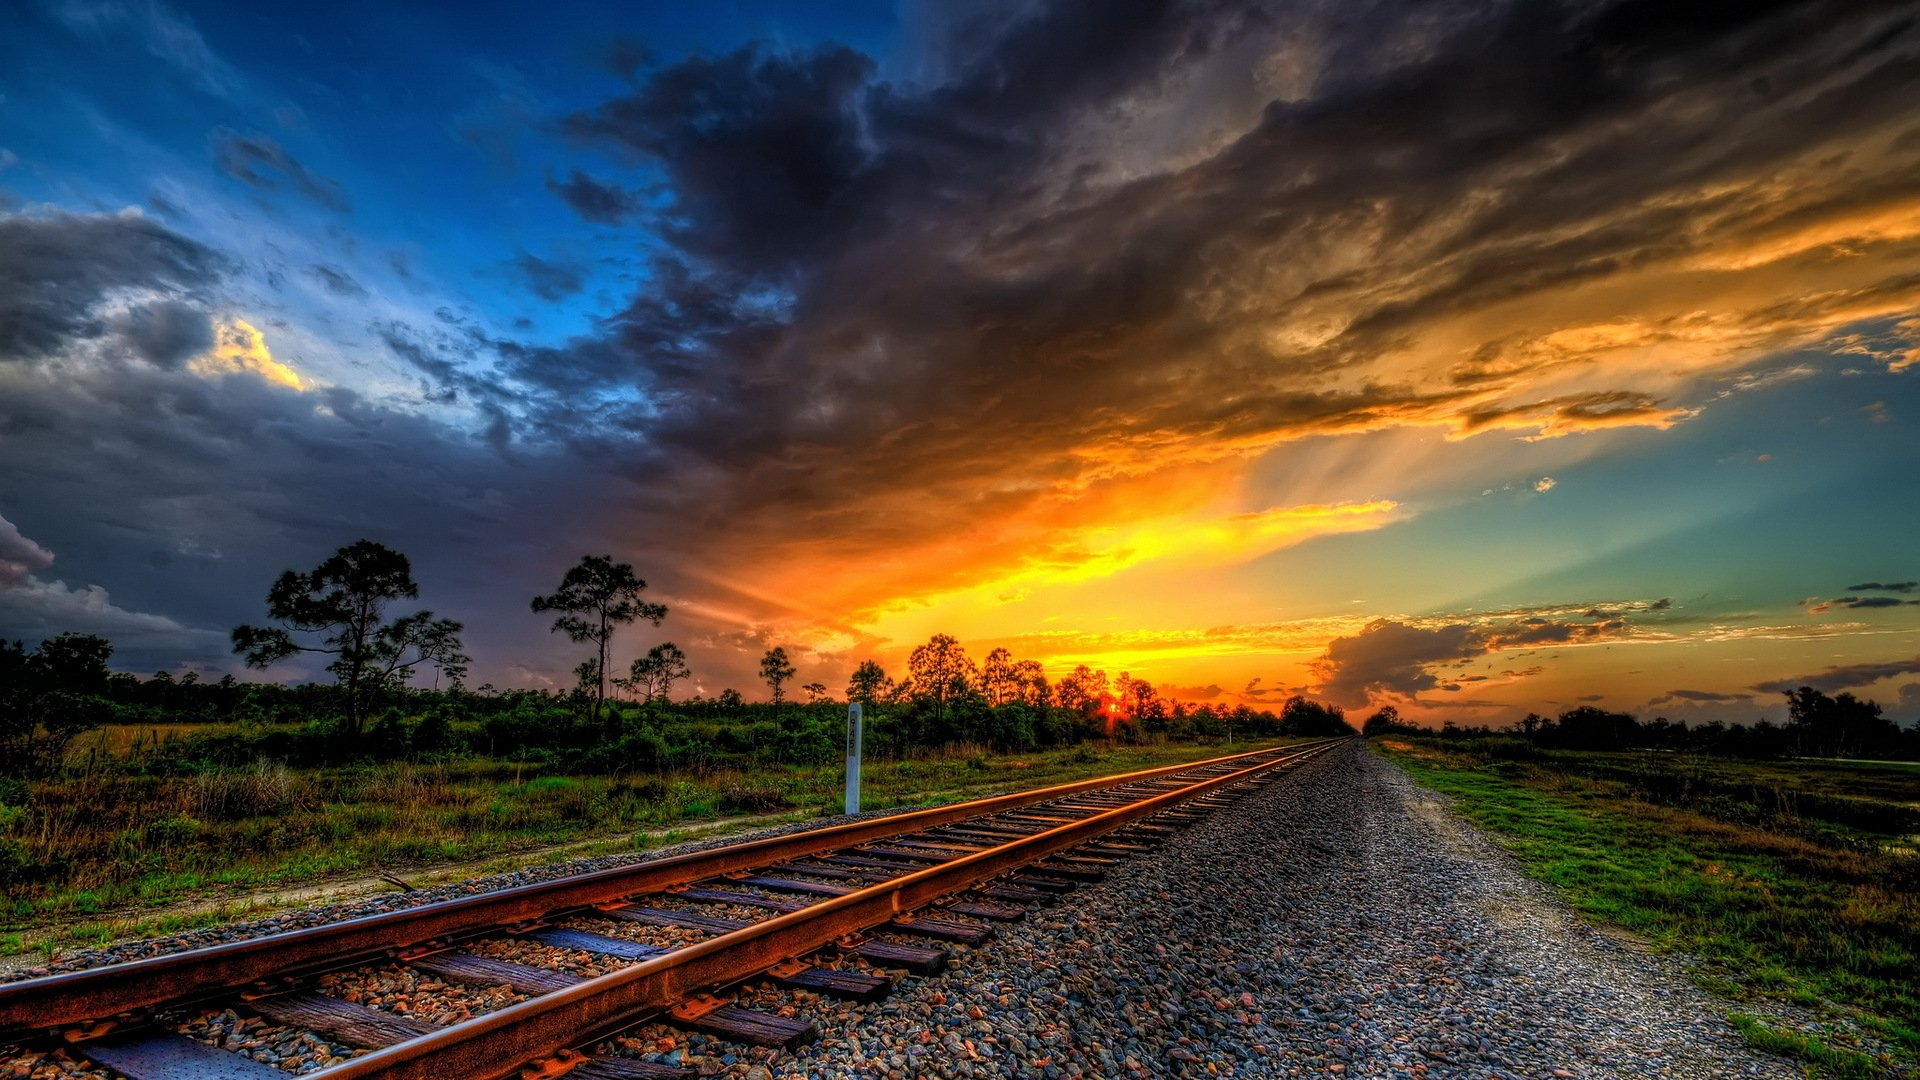 310 Railroad HD Wallpapers | Background Images - Wallpaper Abyss